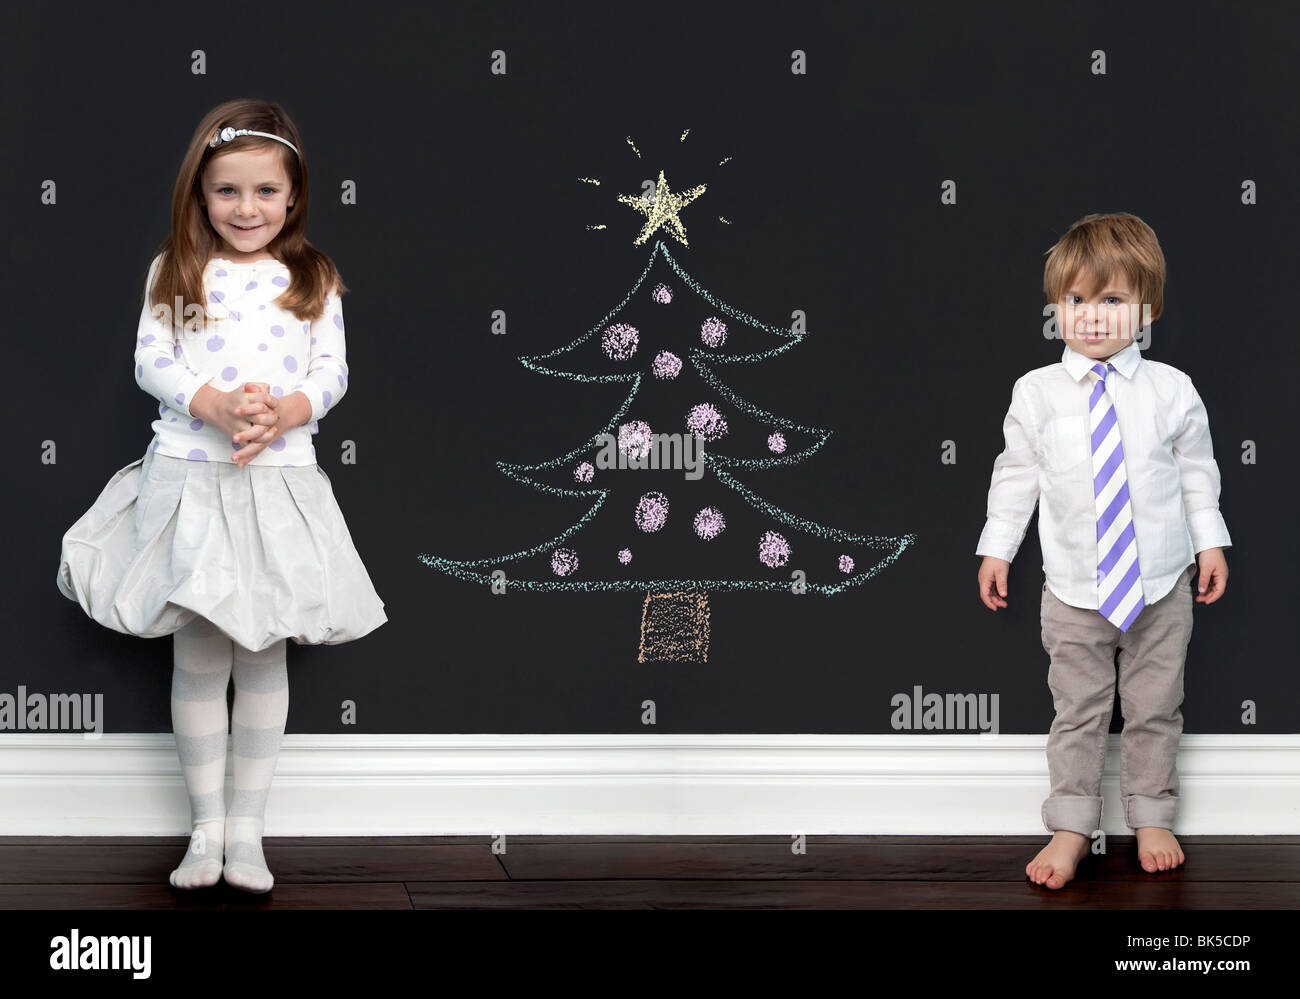 Brother and sister posing by imaginary christmas tree - Stock Image